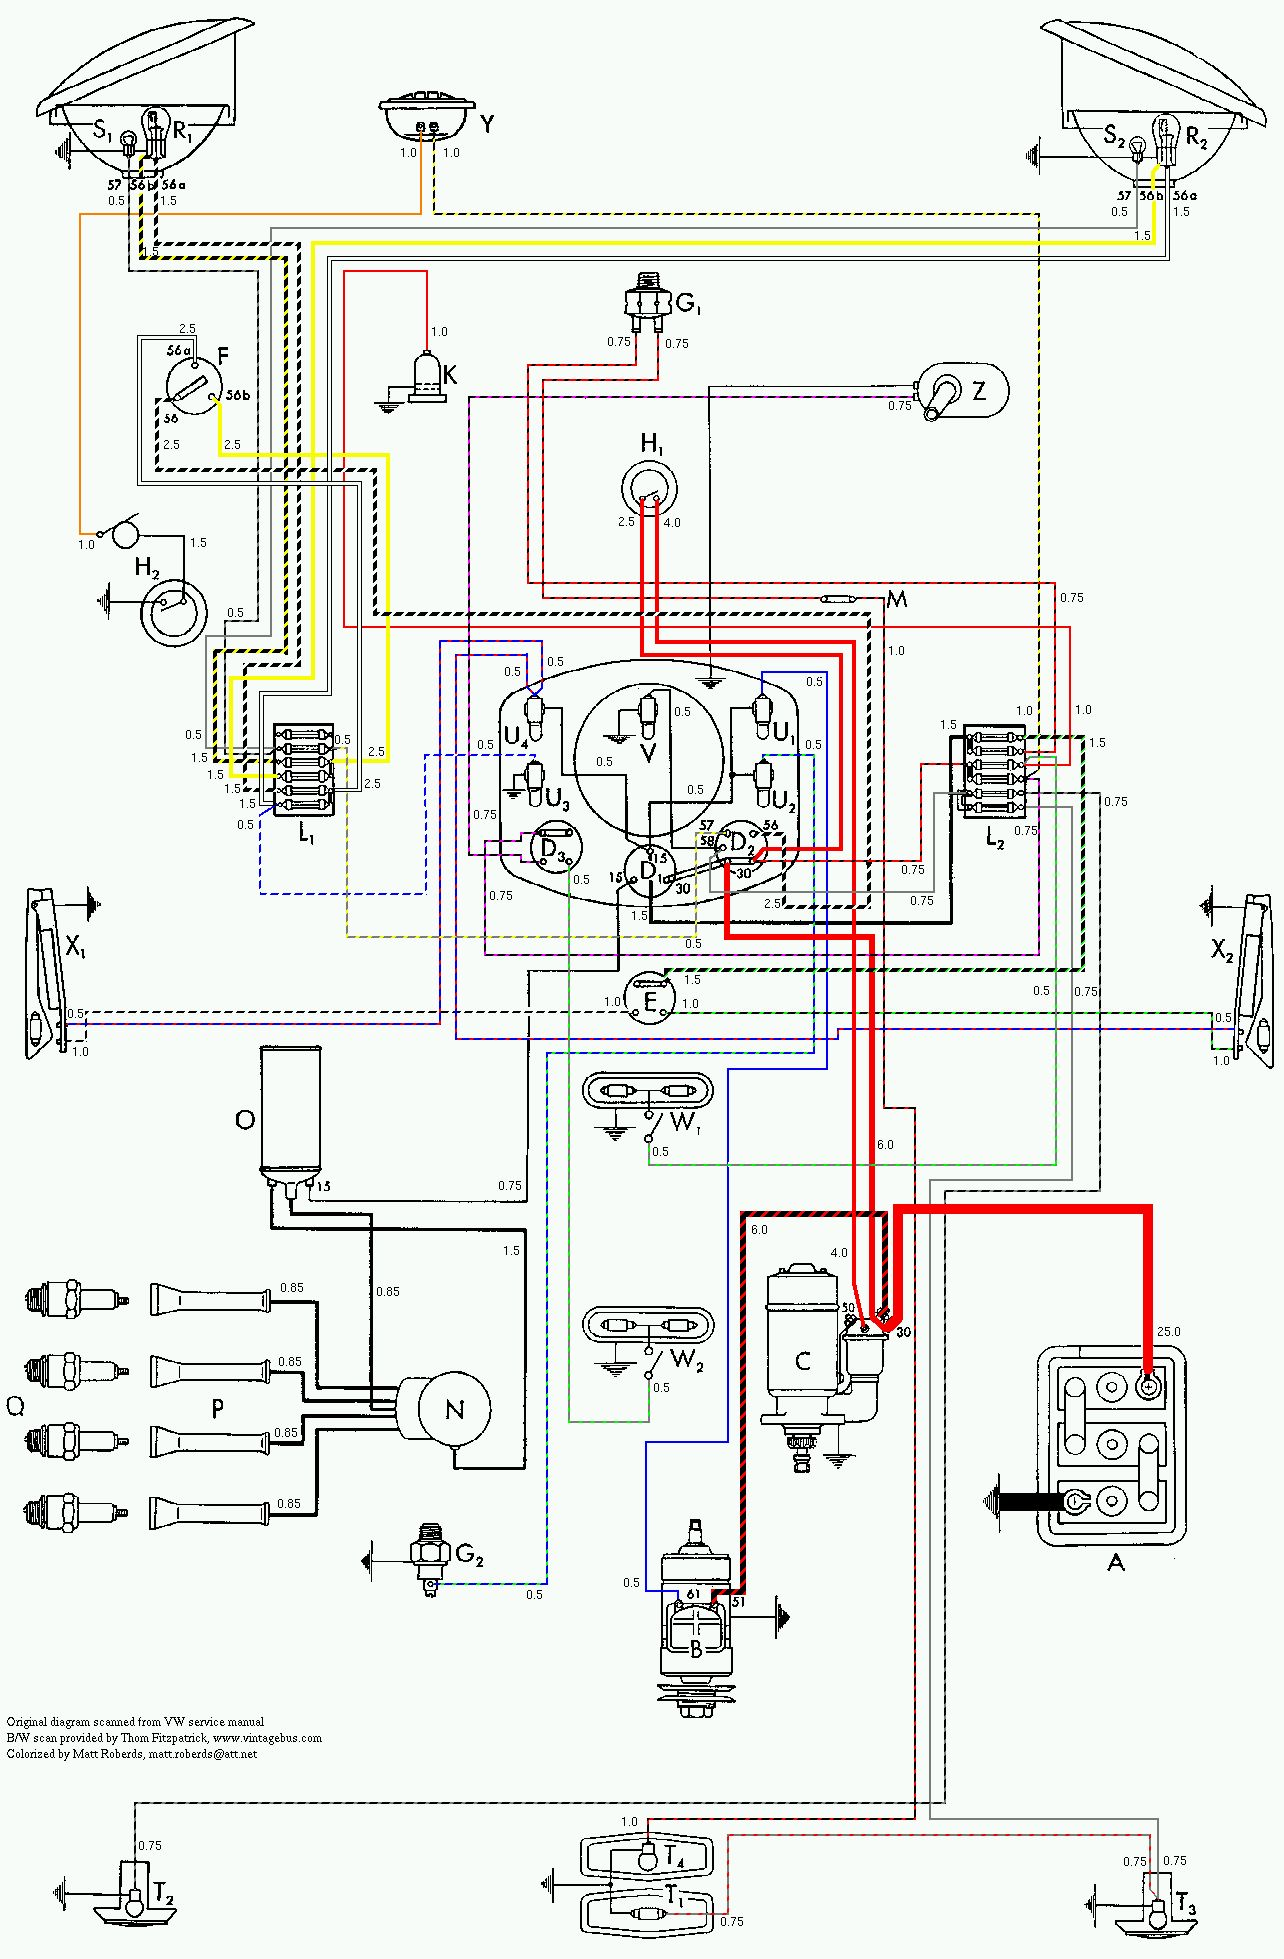 vintagebus com vw bus and other wiring diagrams rh vintagebus com 2007  Passat Fuse Box Diagram 2012 Jetta Fuse Box Diagram